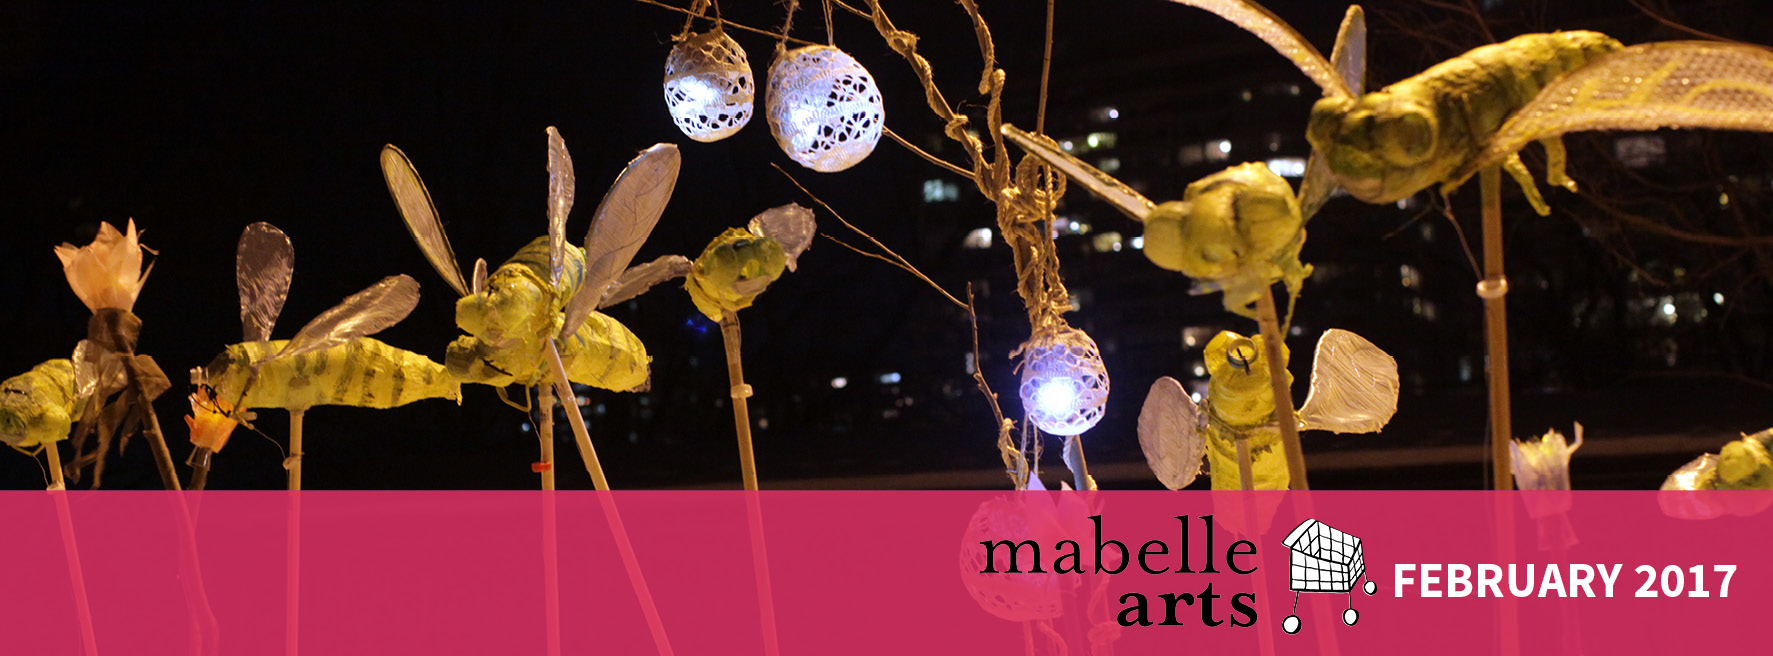 Mabelle Arts February Banner